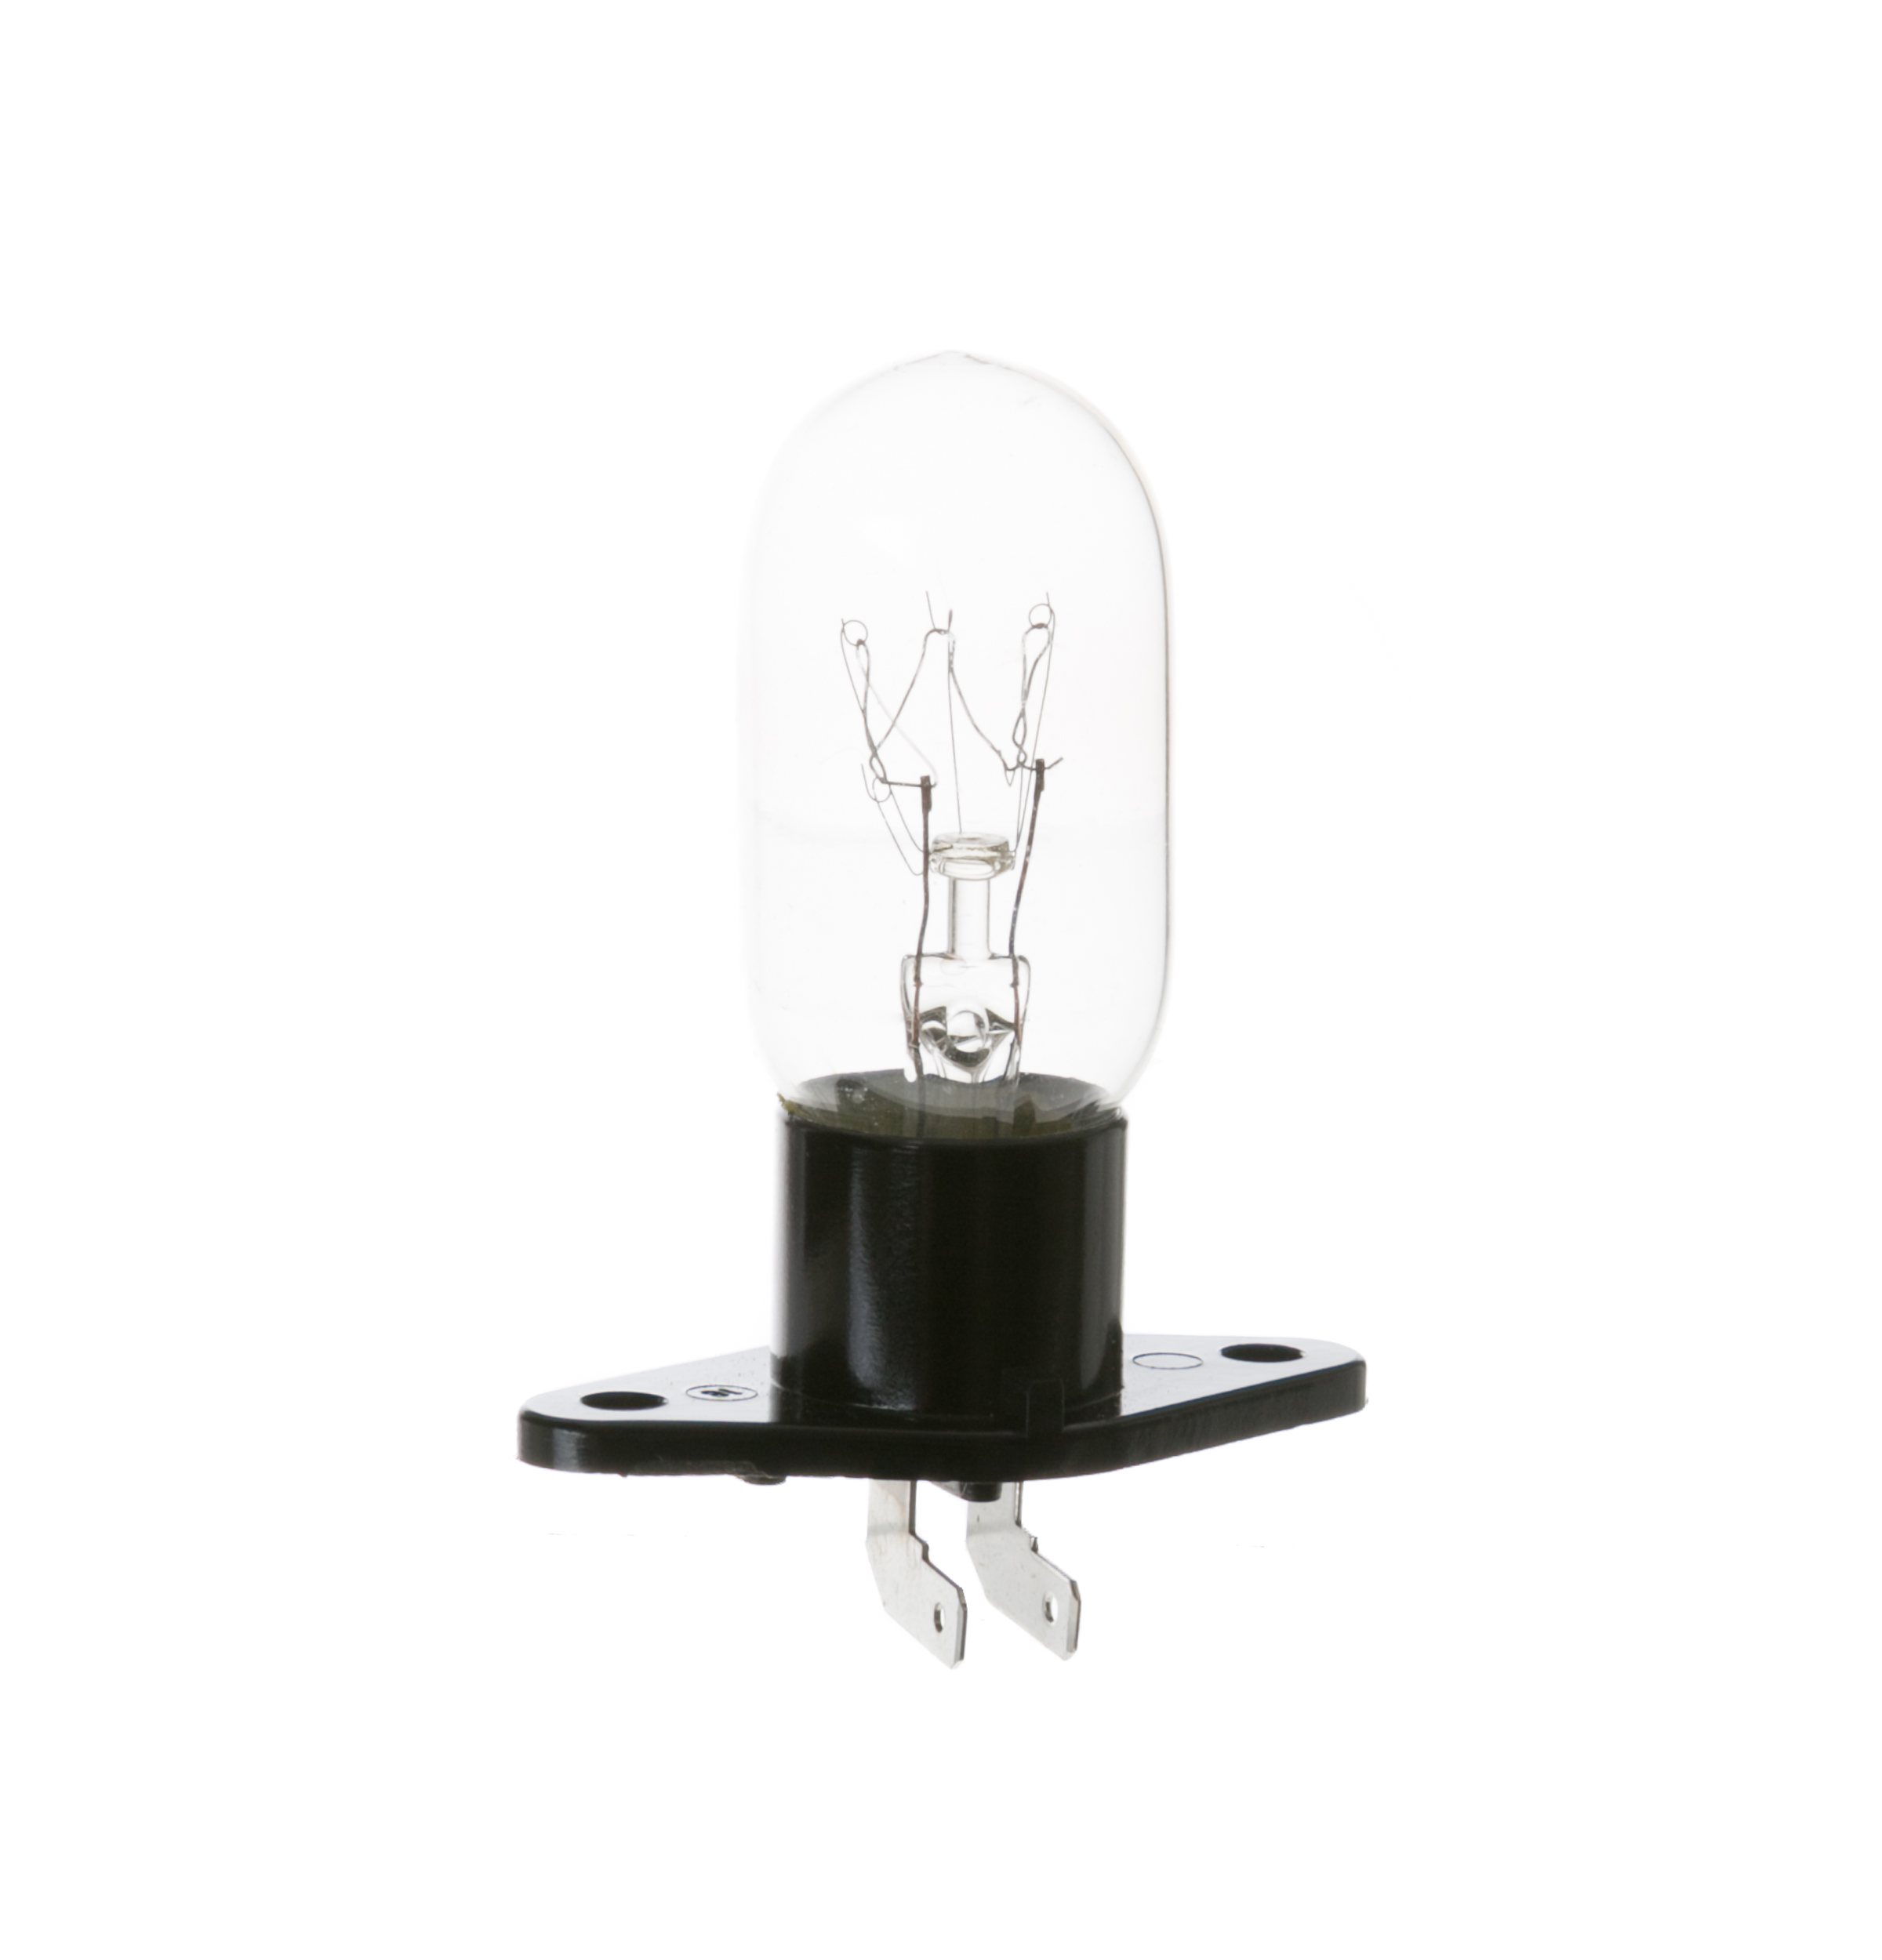 wb36x10131 microwave bulb 125v 30w ge parts. Black Bedroom Furniture Sets. Home Design Ideas